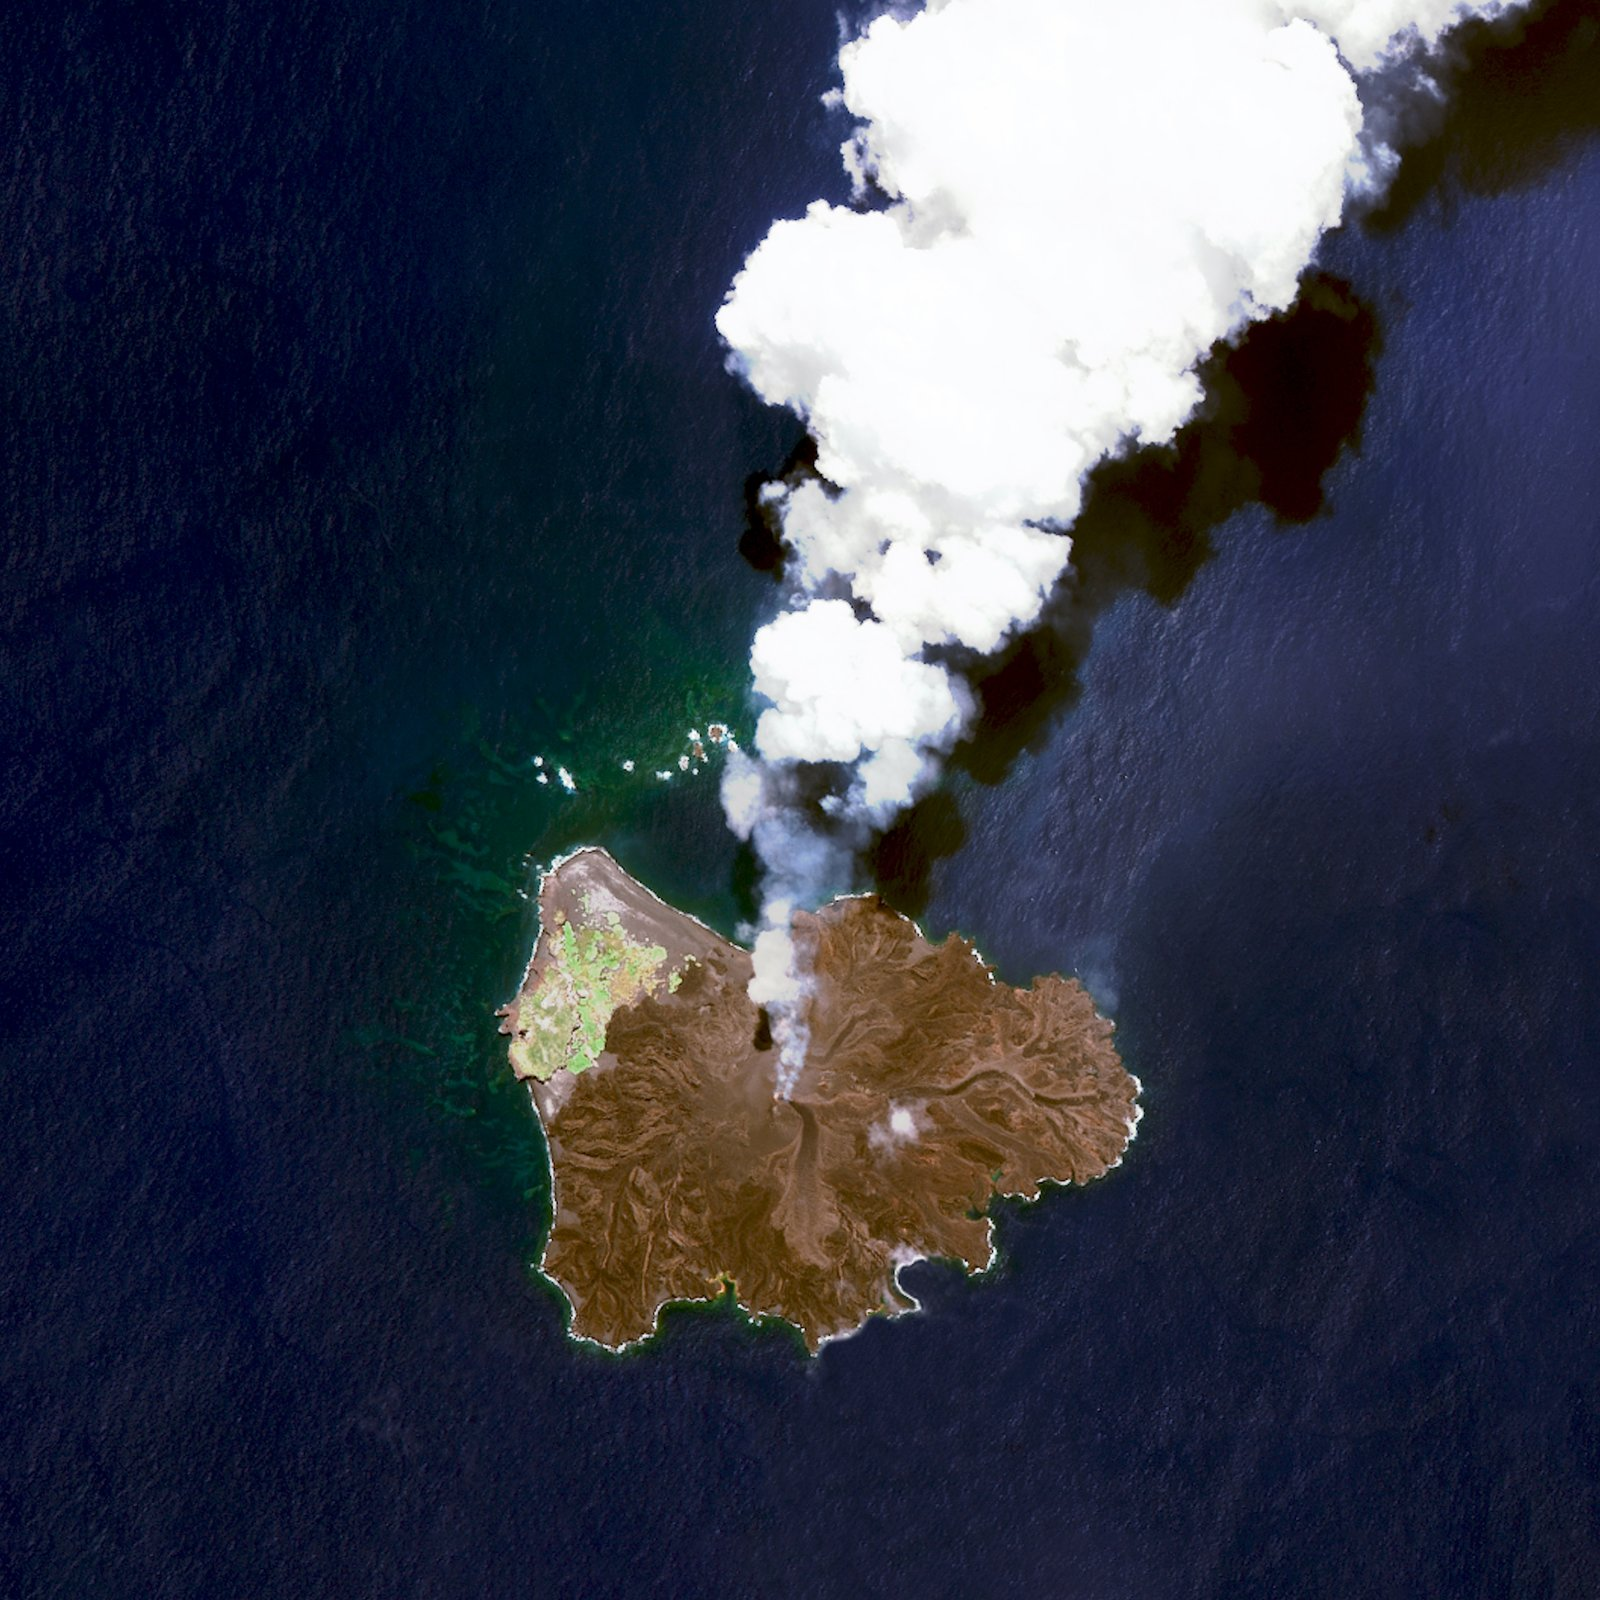 A volcanic island located 584 miles south of Tokyo, Japan, Nishinoshima began to erupt in November 2013, and continued through August 2015.  Reprinted with permission from Overview by Benjamin Grant, copyright (c) 2016. Published by Amphoto Books, a division of Penguin Random House, Inc.   Images (c) 2016 by DigitalGlobe, Inc.   Ever Wondered About the View from Space?